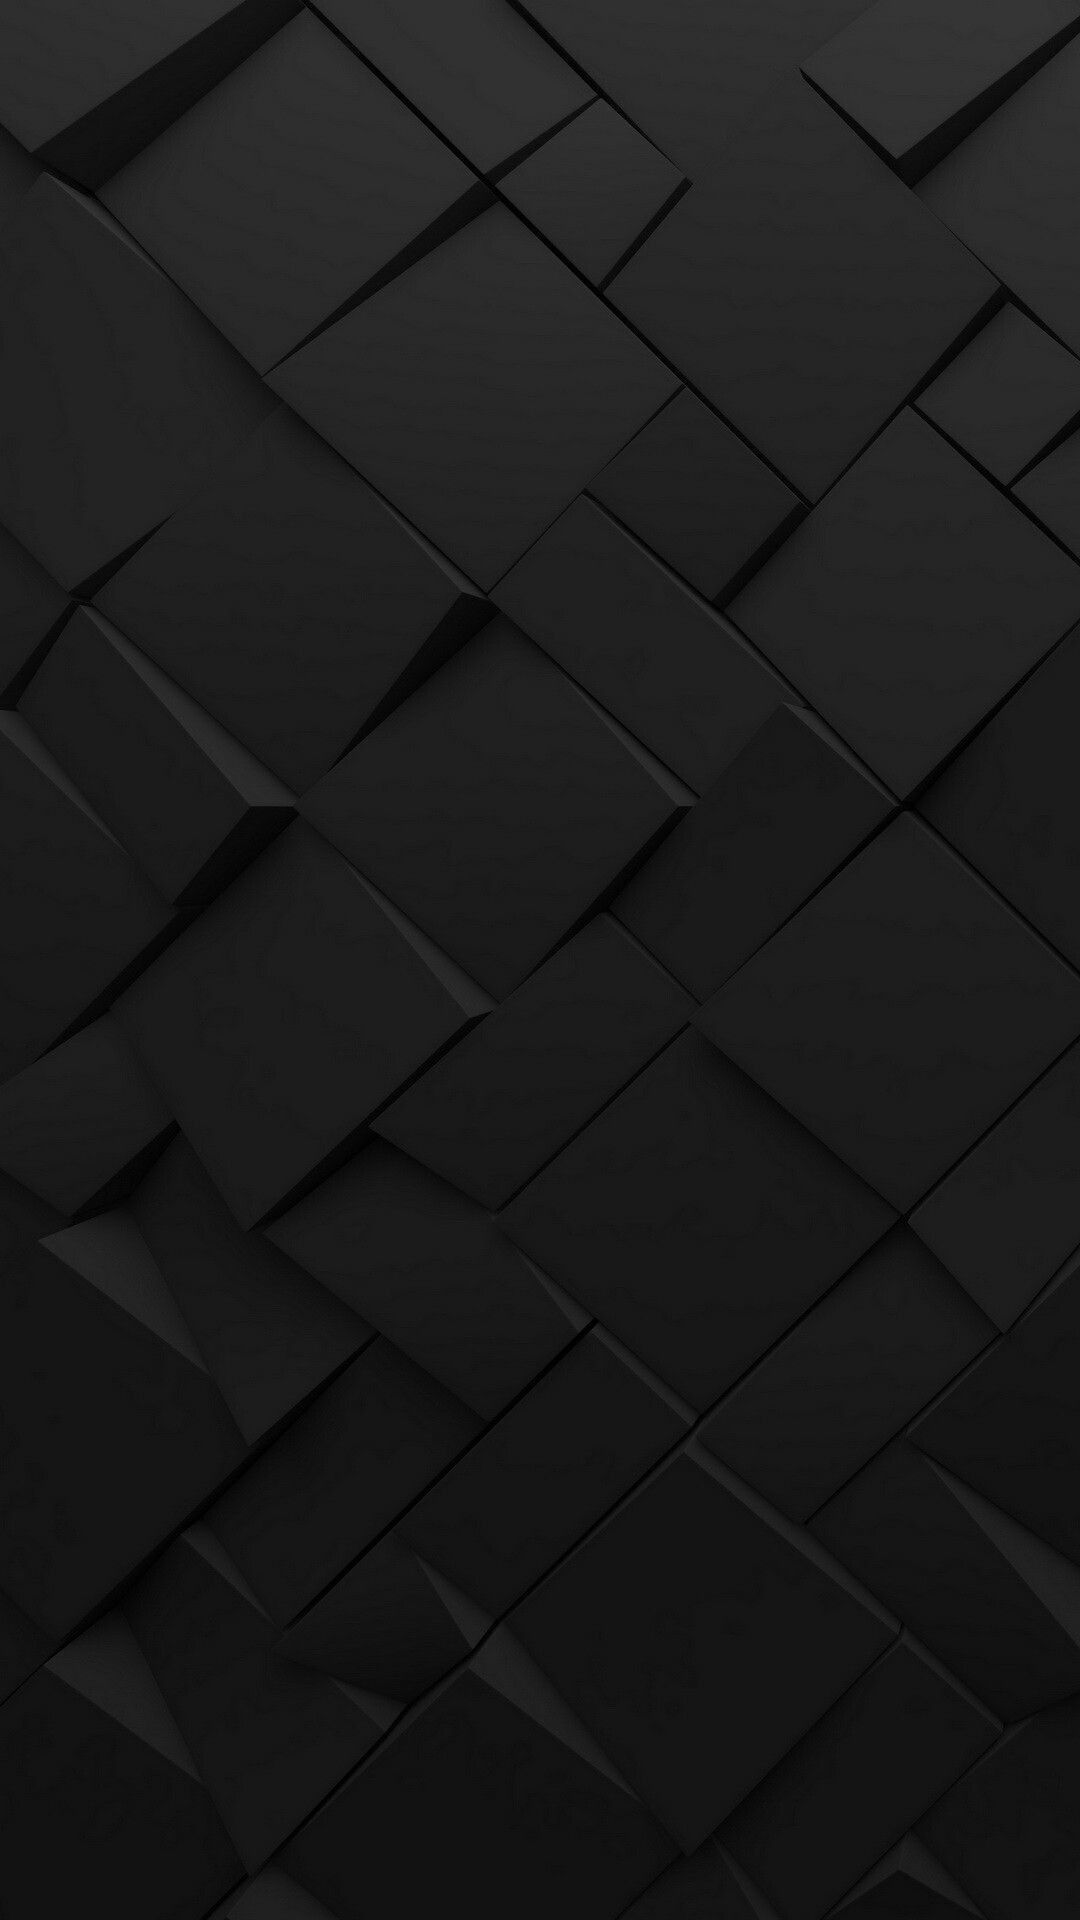 Minimalist Black Phone Wallpapers Top Free Minimalist Black Phone Backgrounds Wallpaperaccess